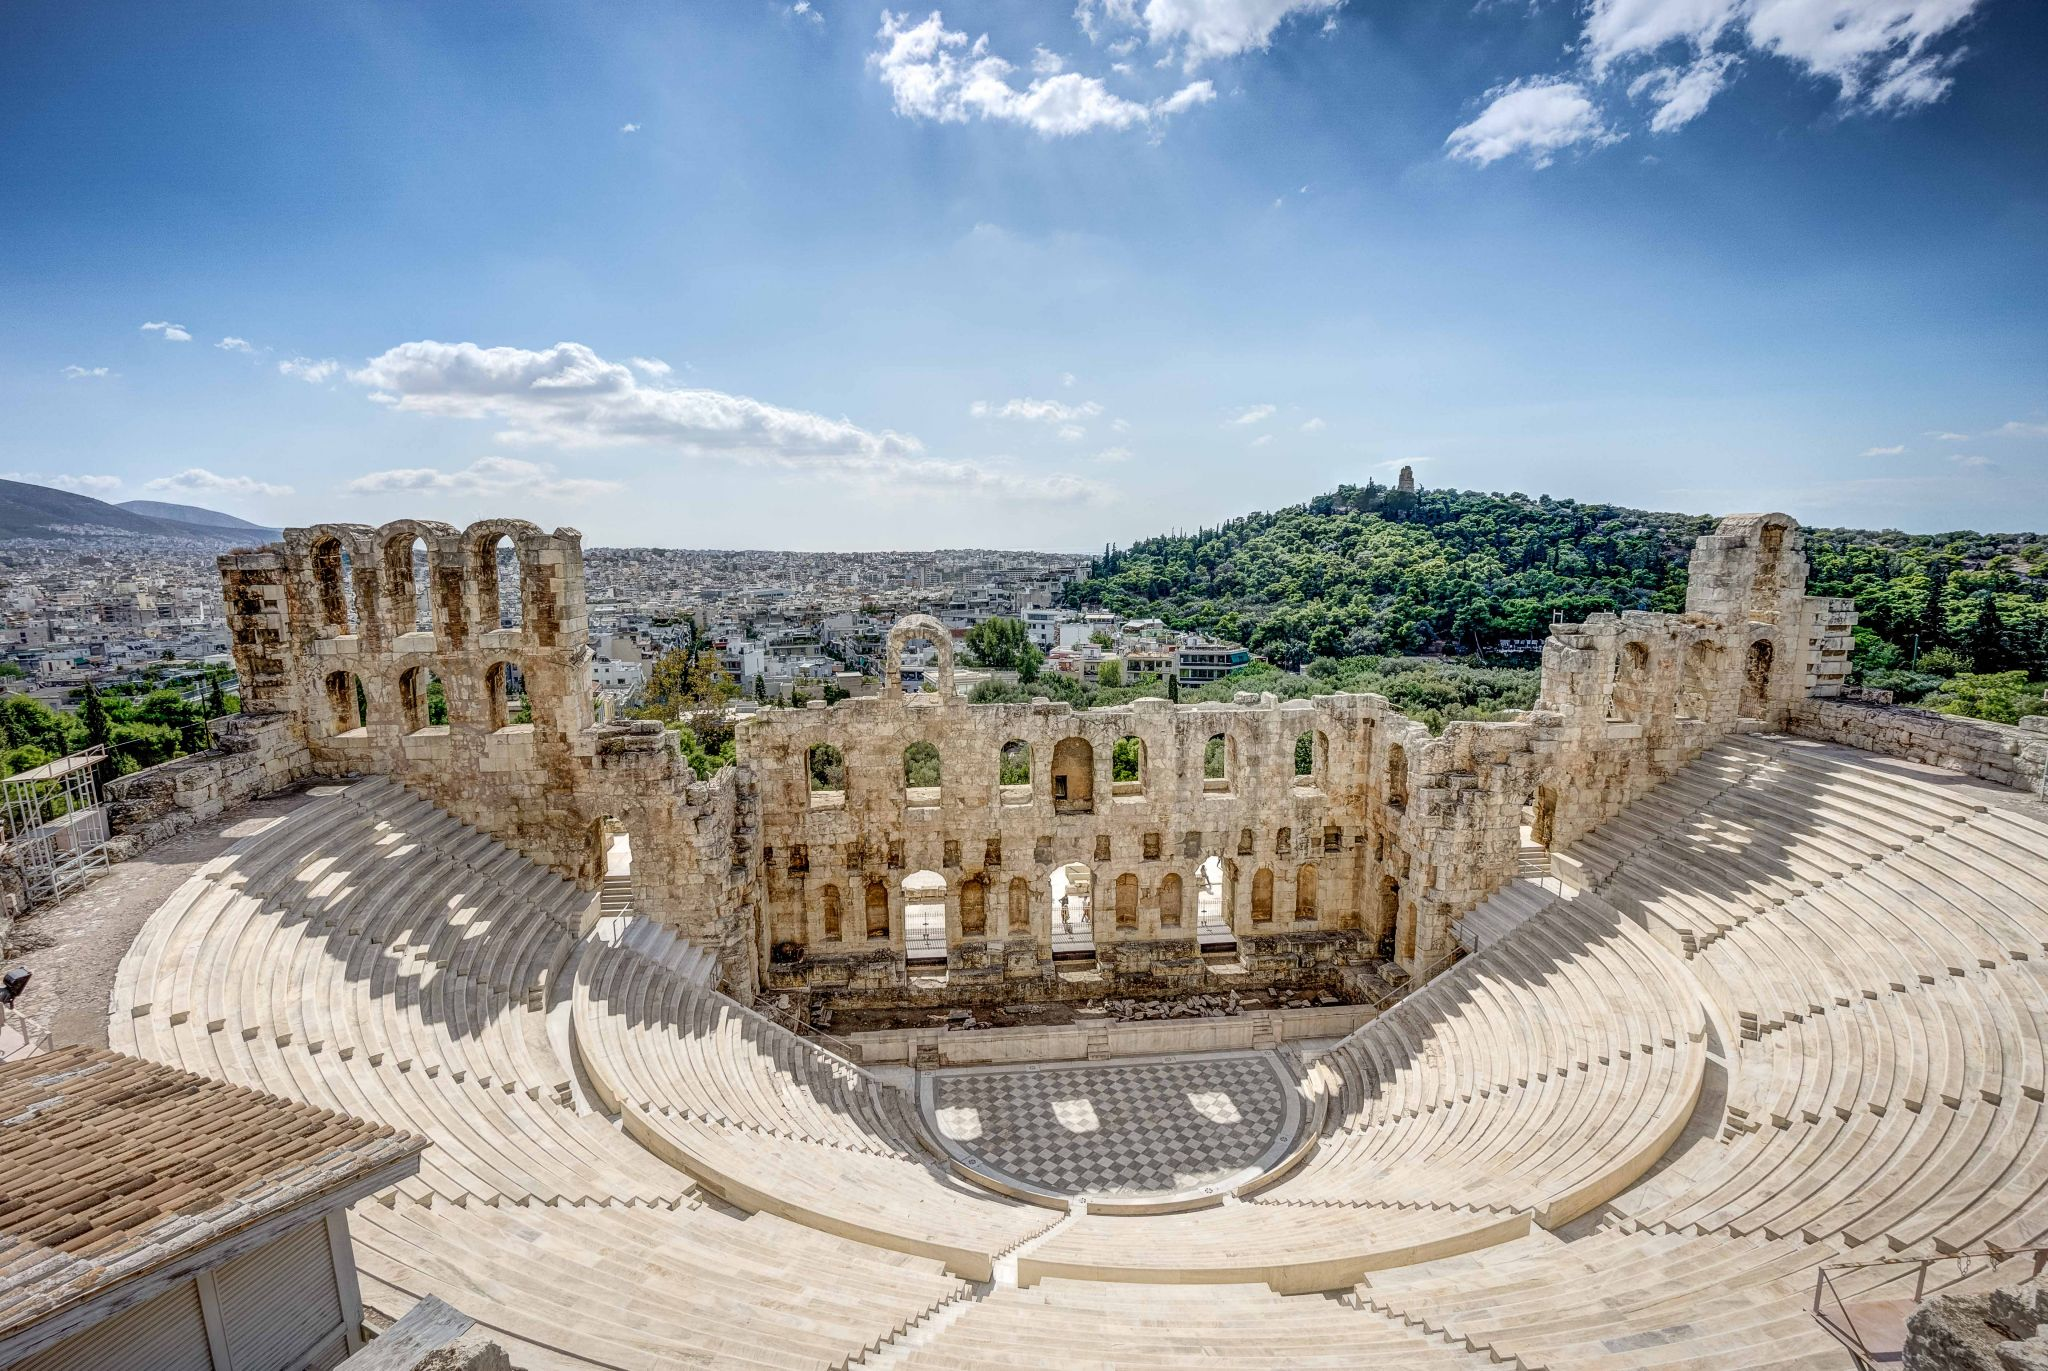 Odeon des Herodes Atticus, Greece